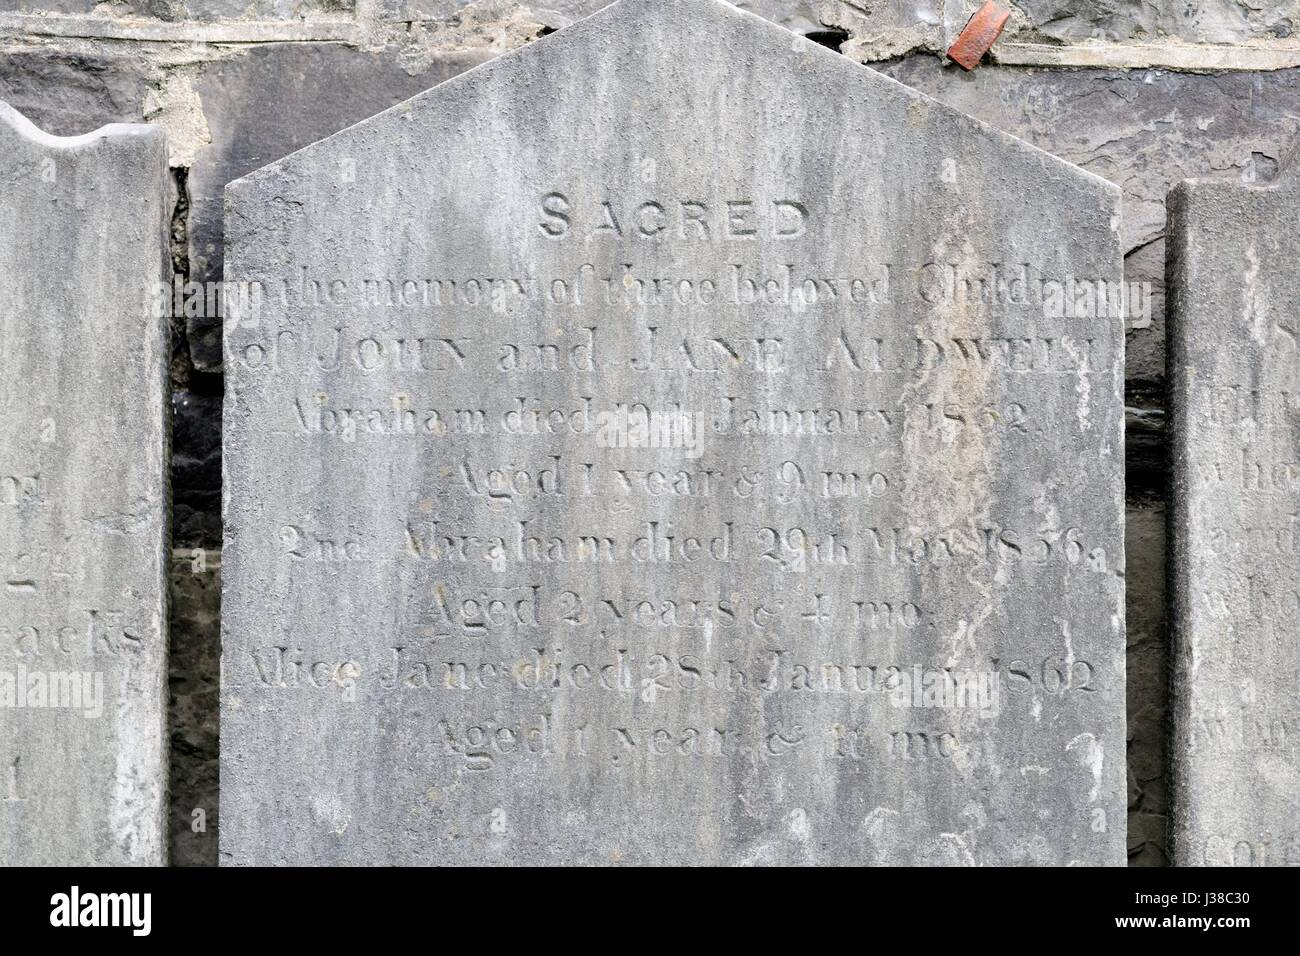 One of the tombstones of British military personnel who died in the Dublin area in the 19th and early 20th century - Stock Image